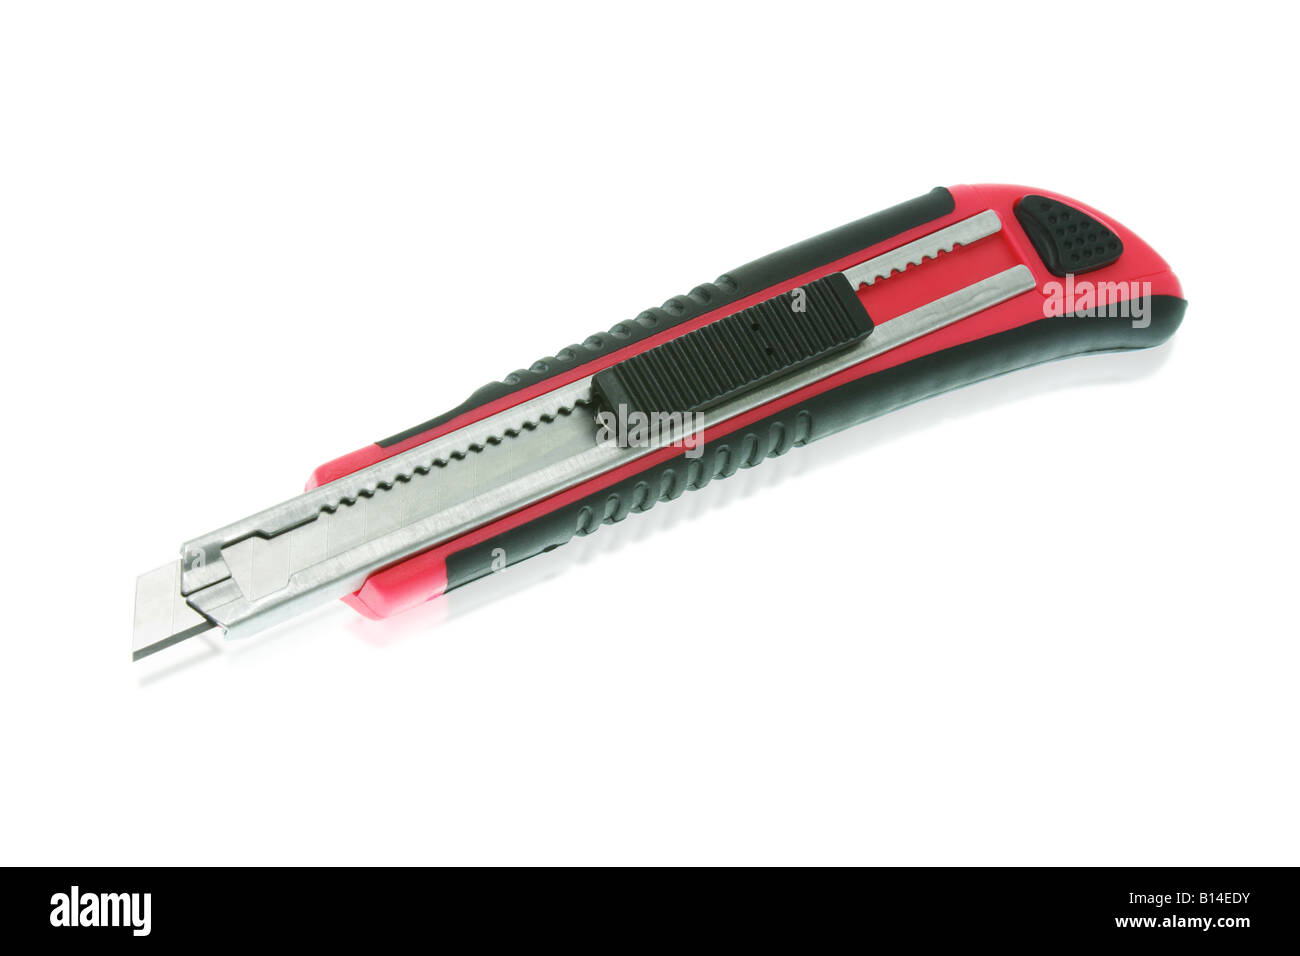 Red utility knife isolated on white background - Stock Image